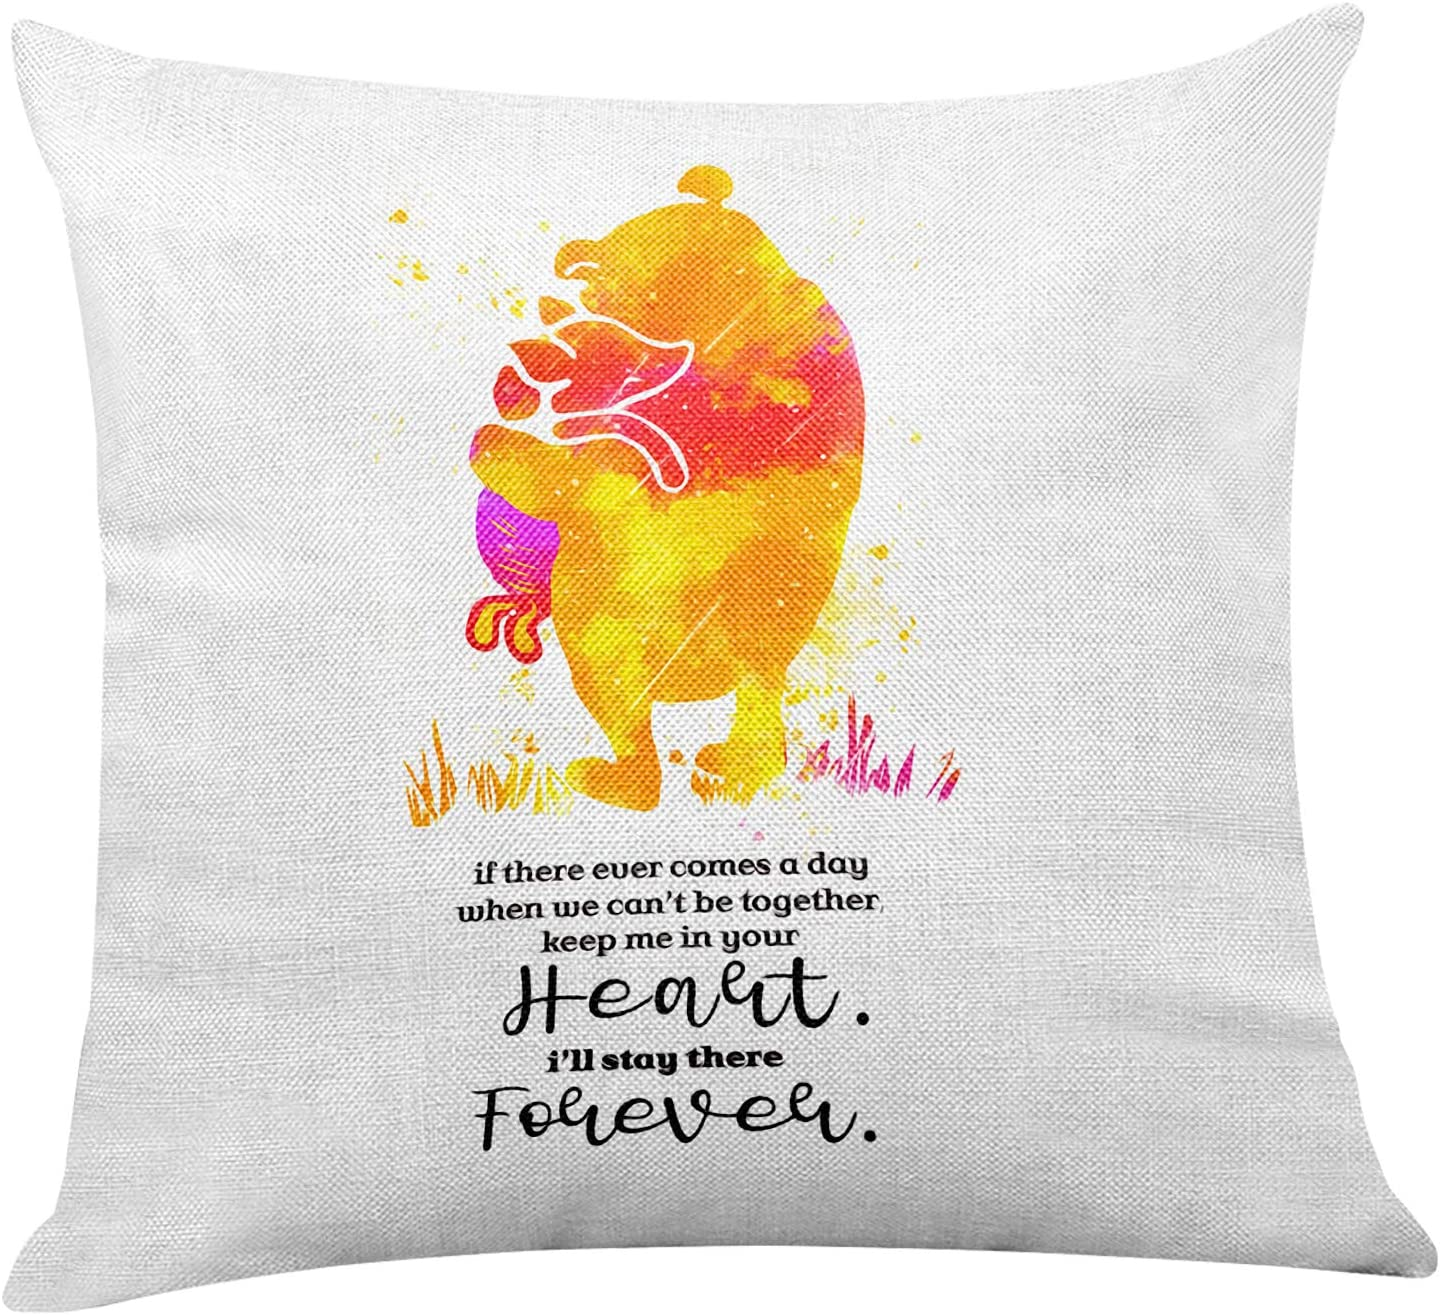 Yuzi-n Classic Winnie The Pooh Quote Pillow Covers for Nursery/Home/Kids Room Decor - Winnie The Pooh Gifts for Kids Teens Girls Women - Nursery Watercolor Pillow Covers Home Sofa Decoration